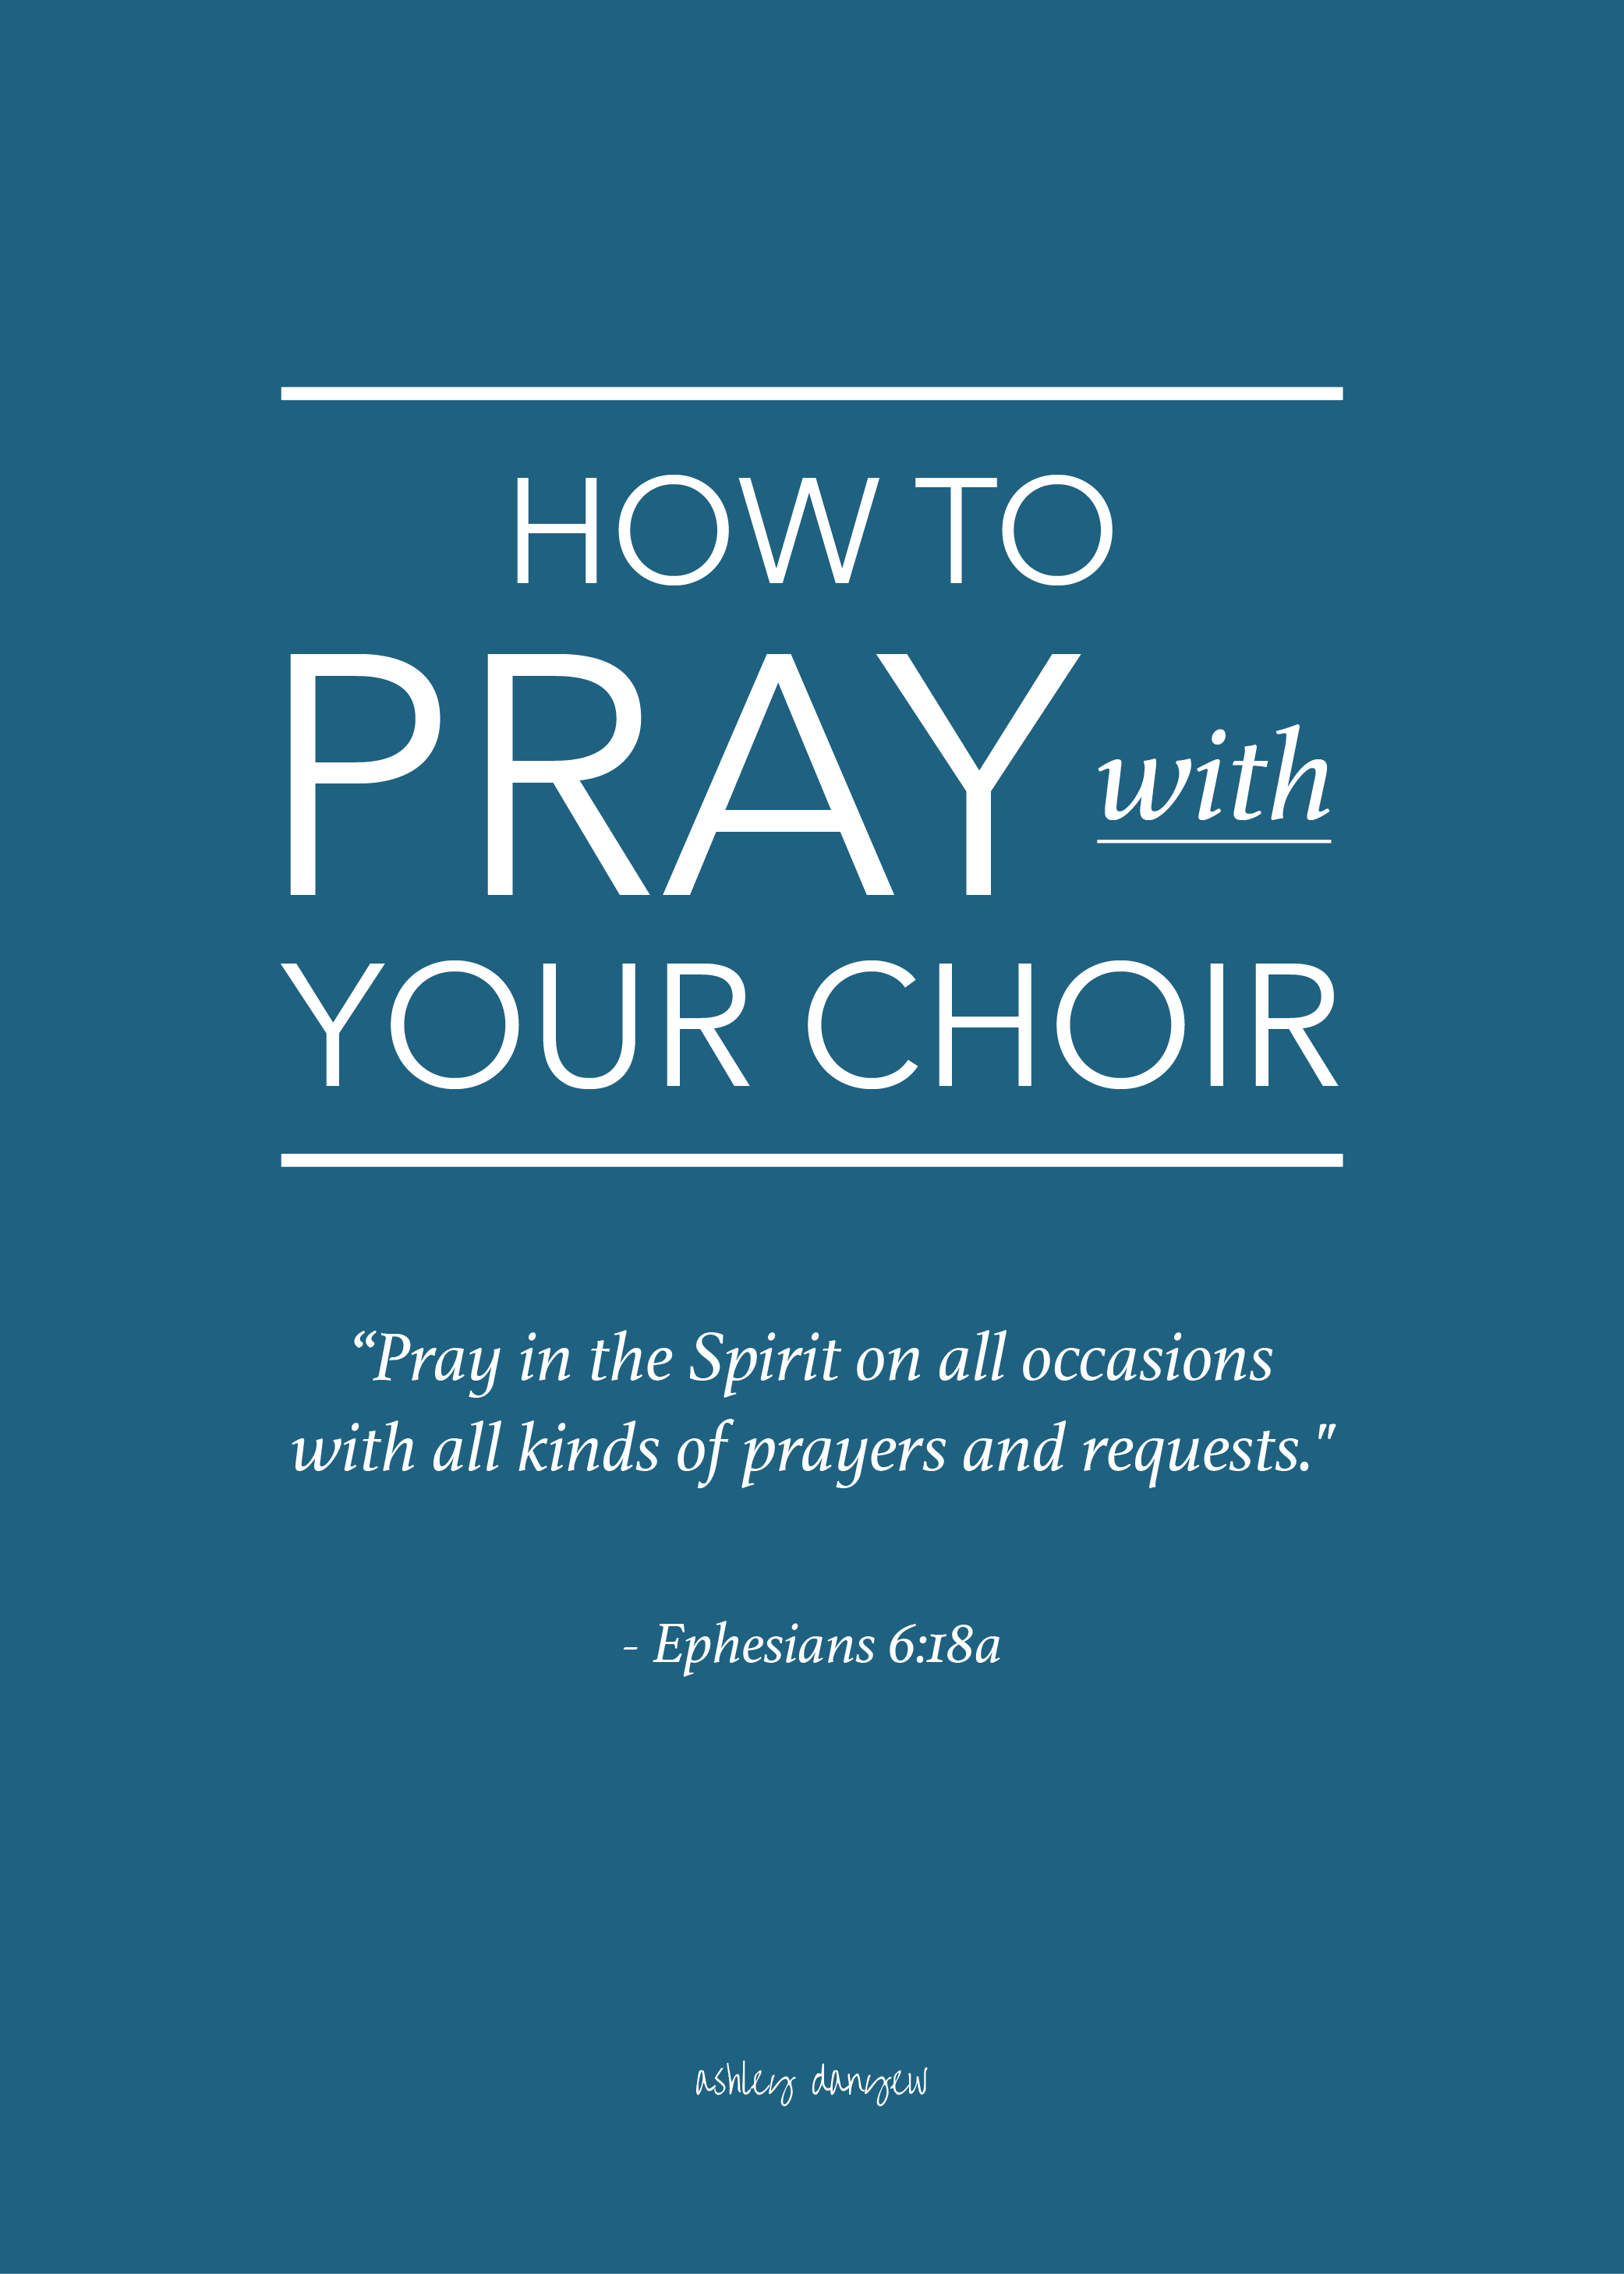 Copy of How to Pray with Your Choir